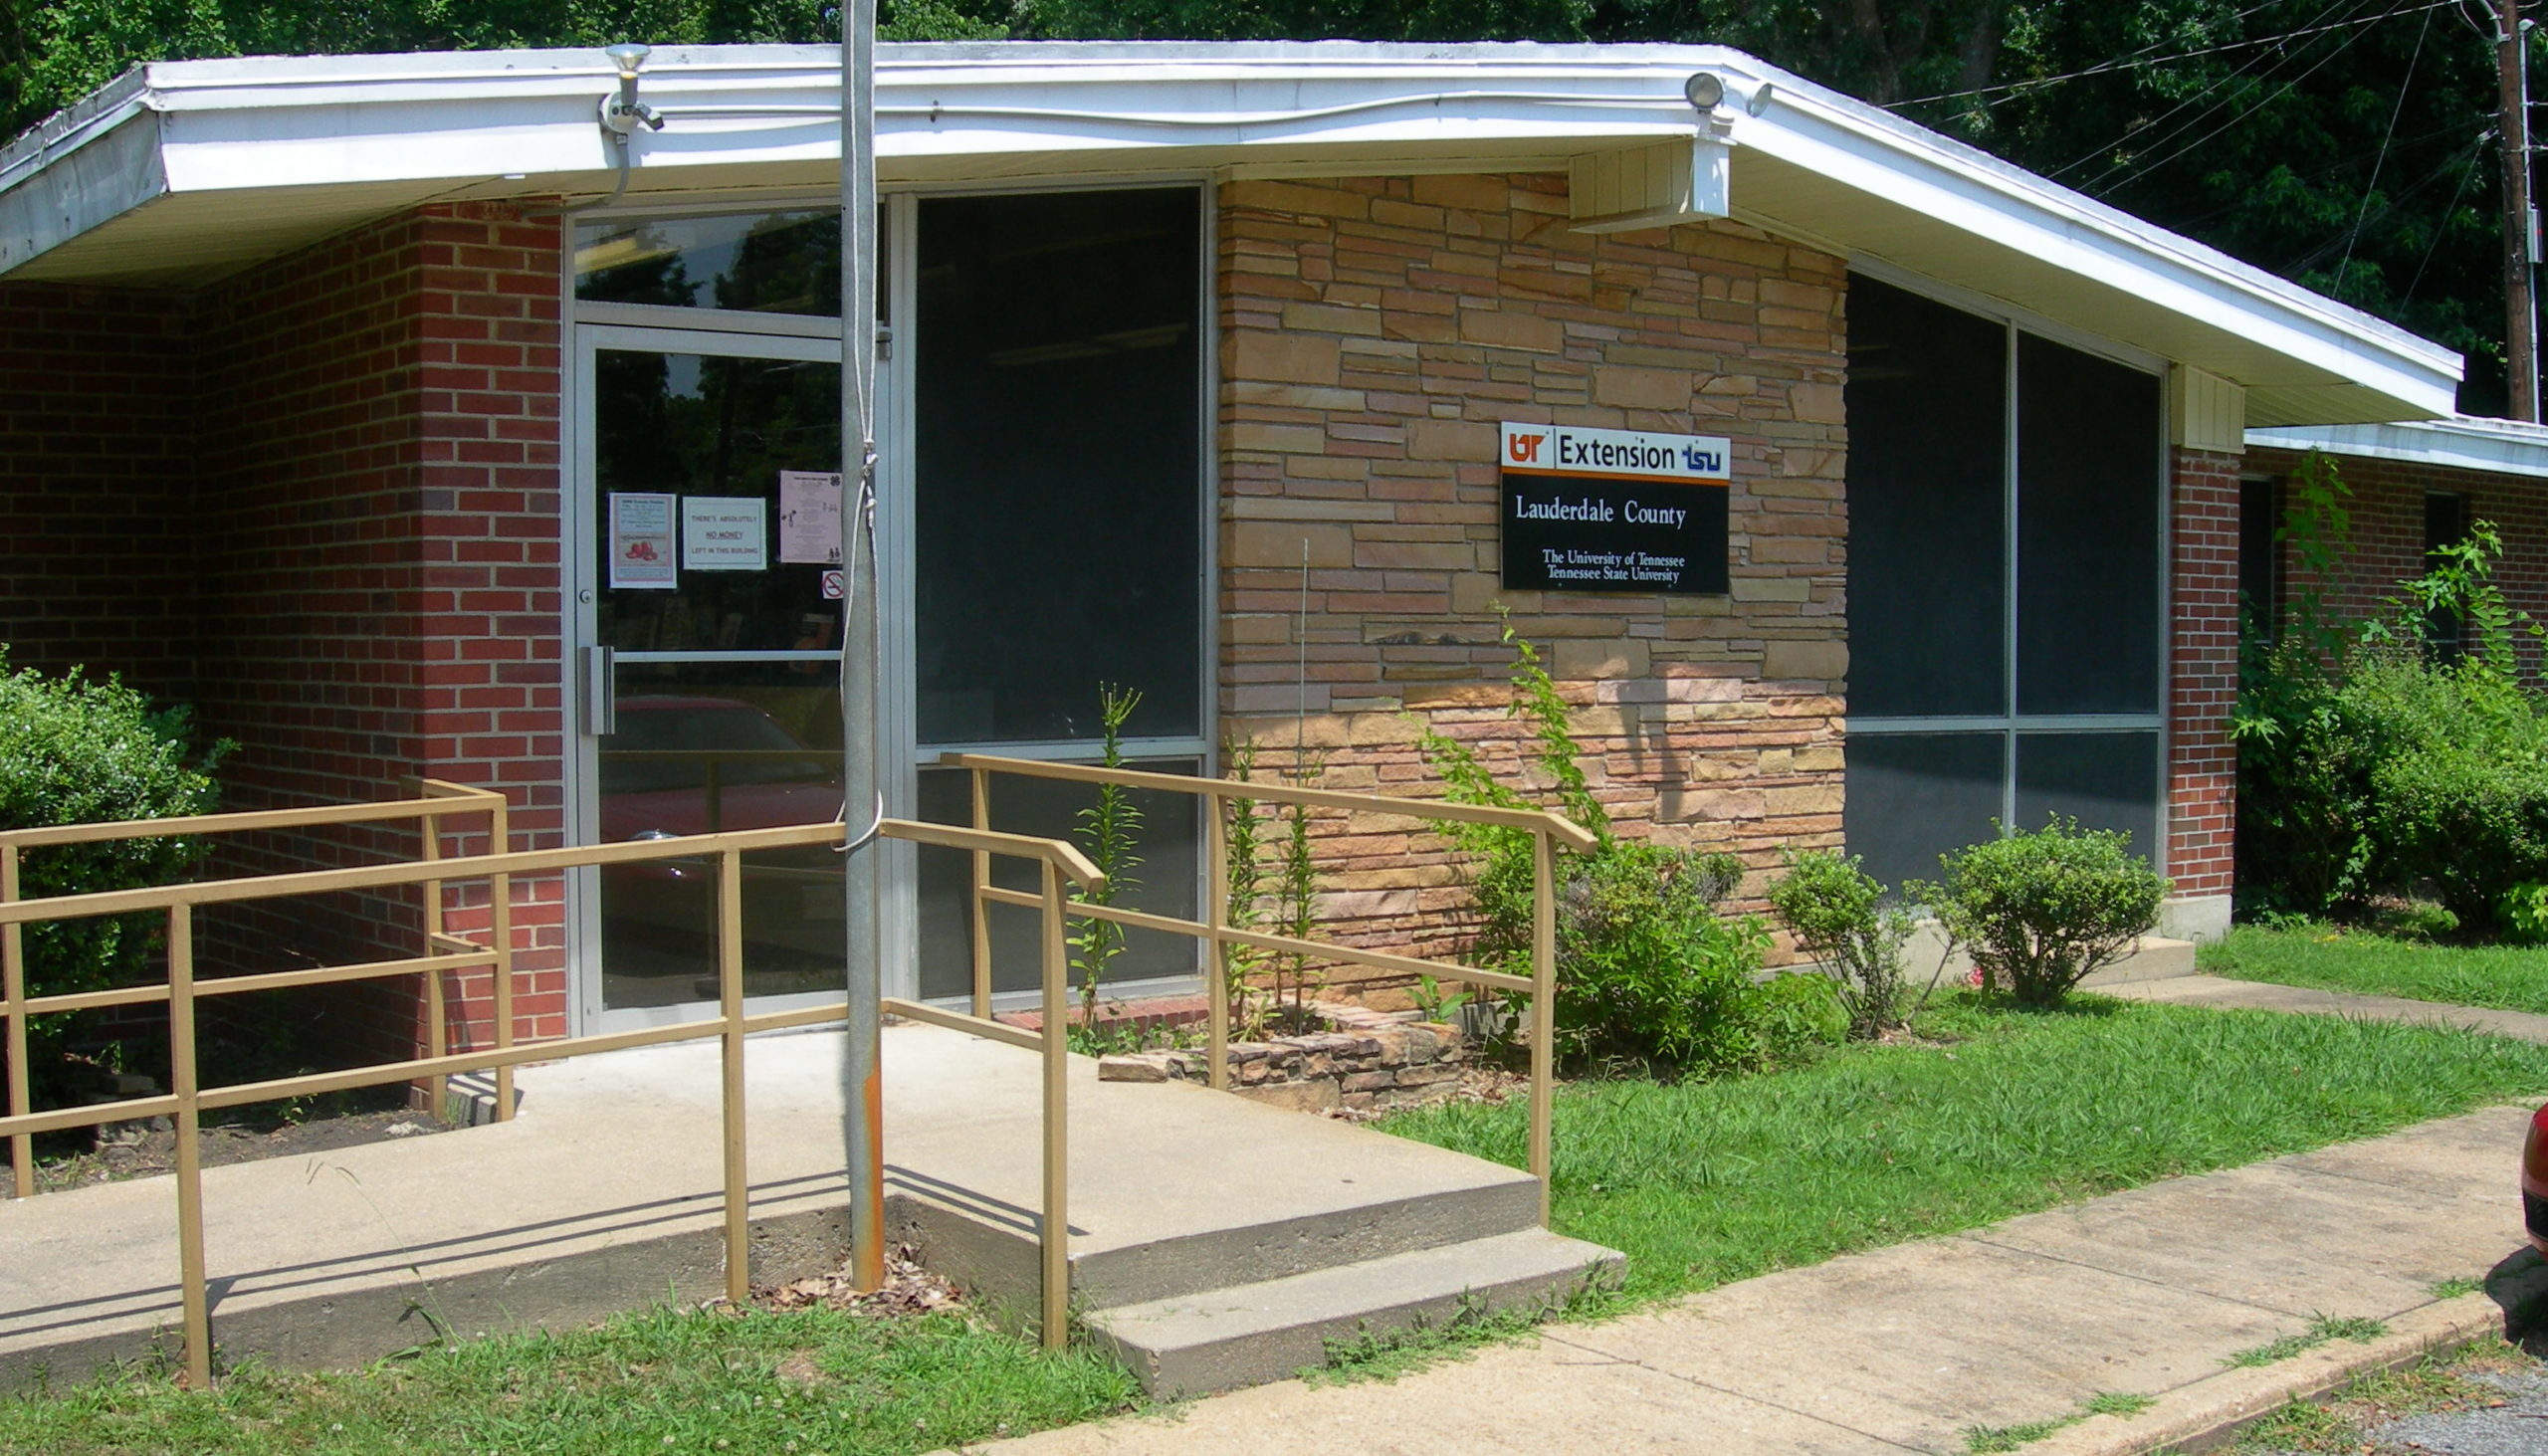 Lauderdale County Extension Office